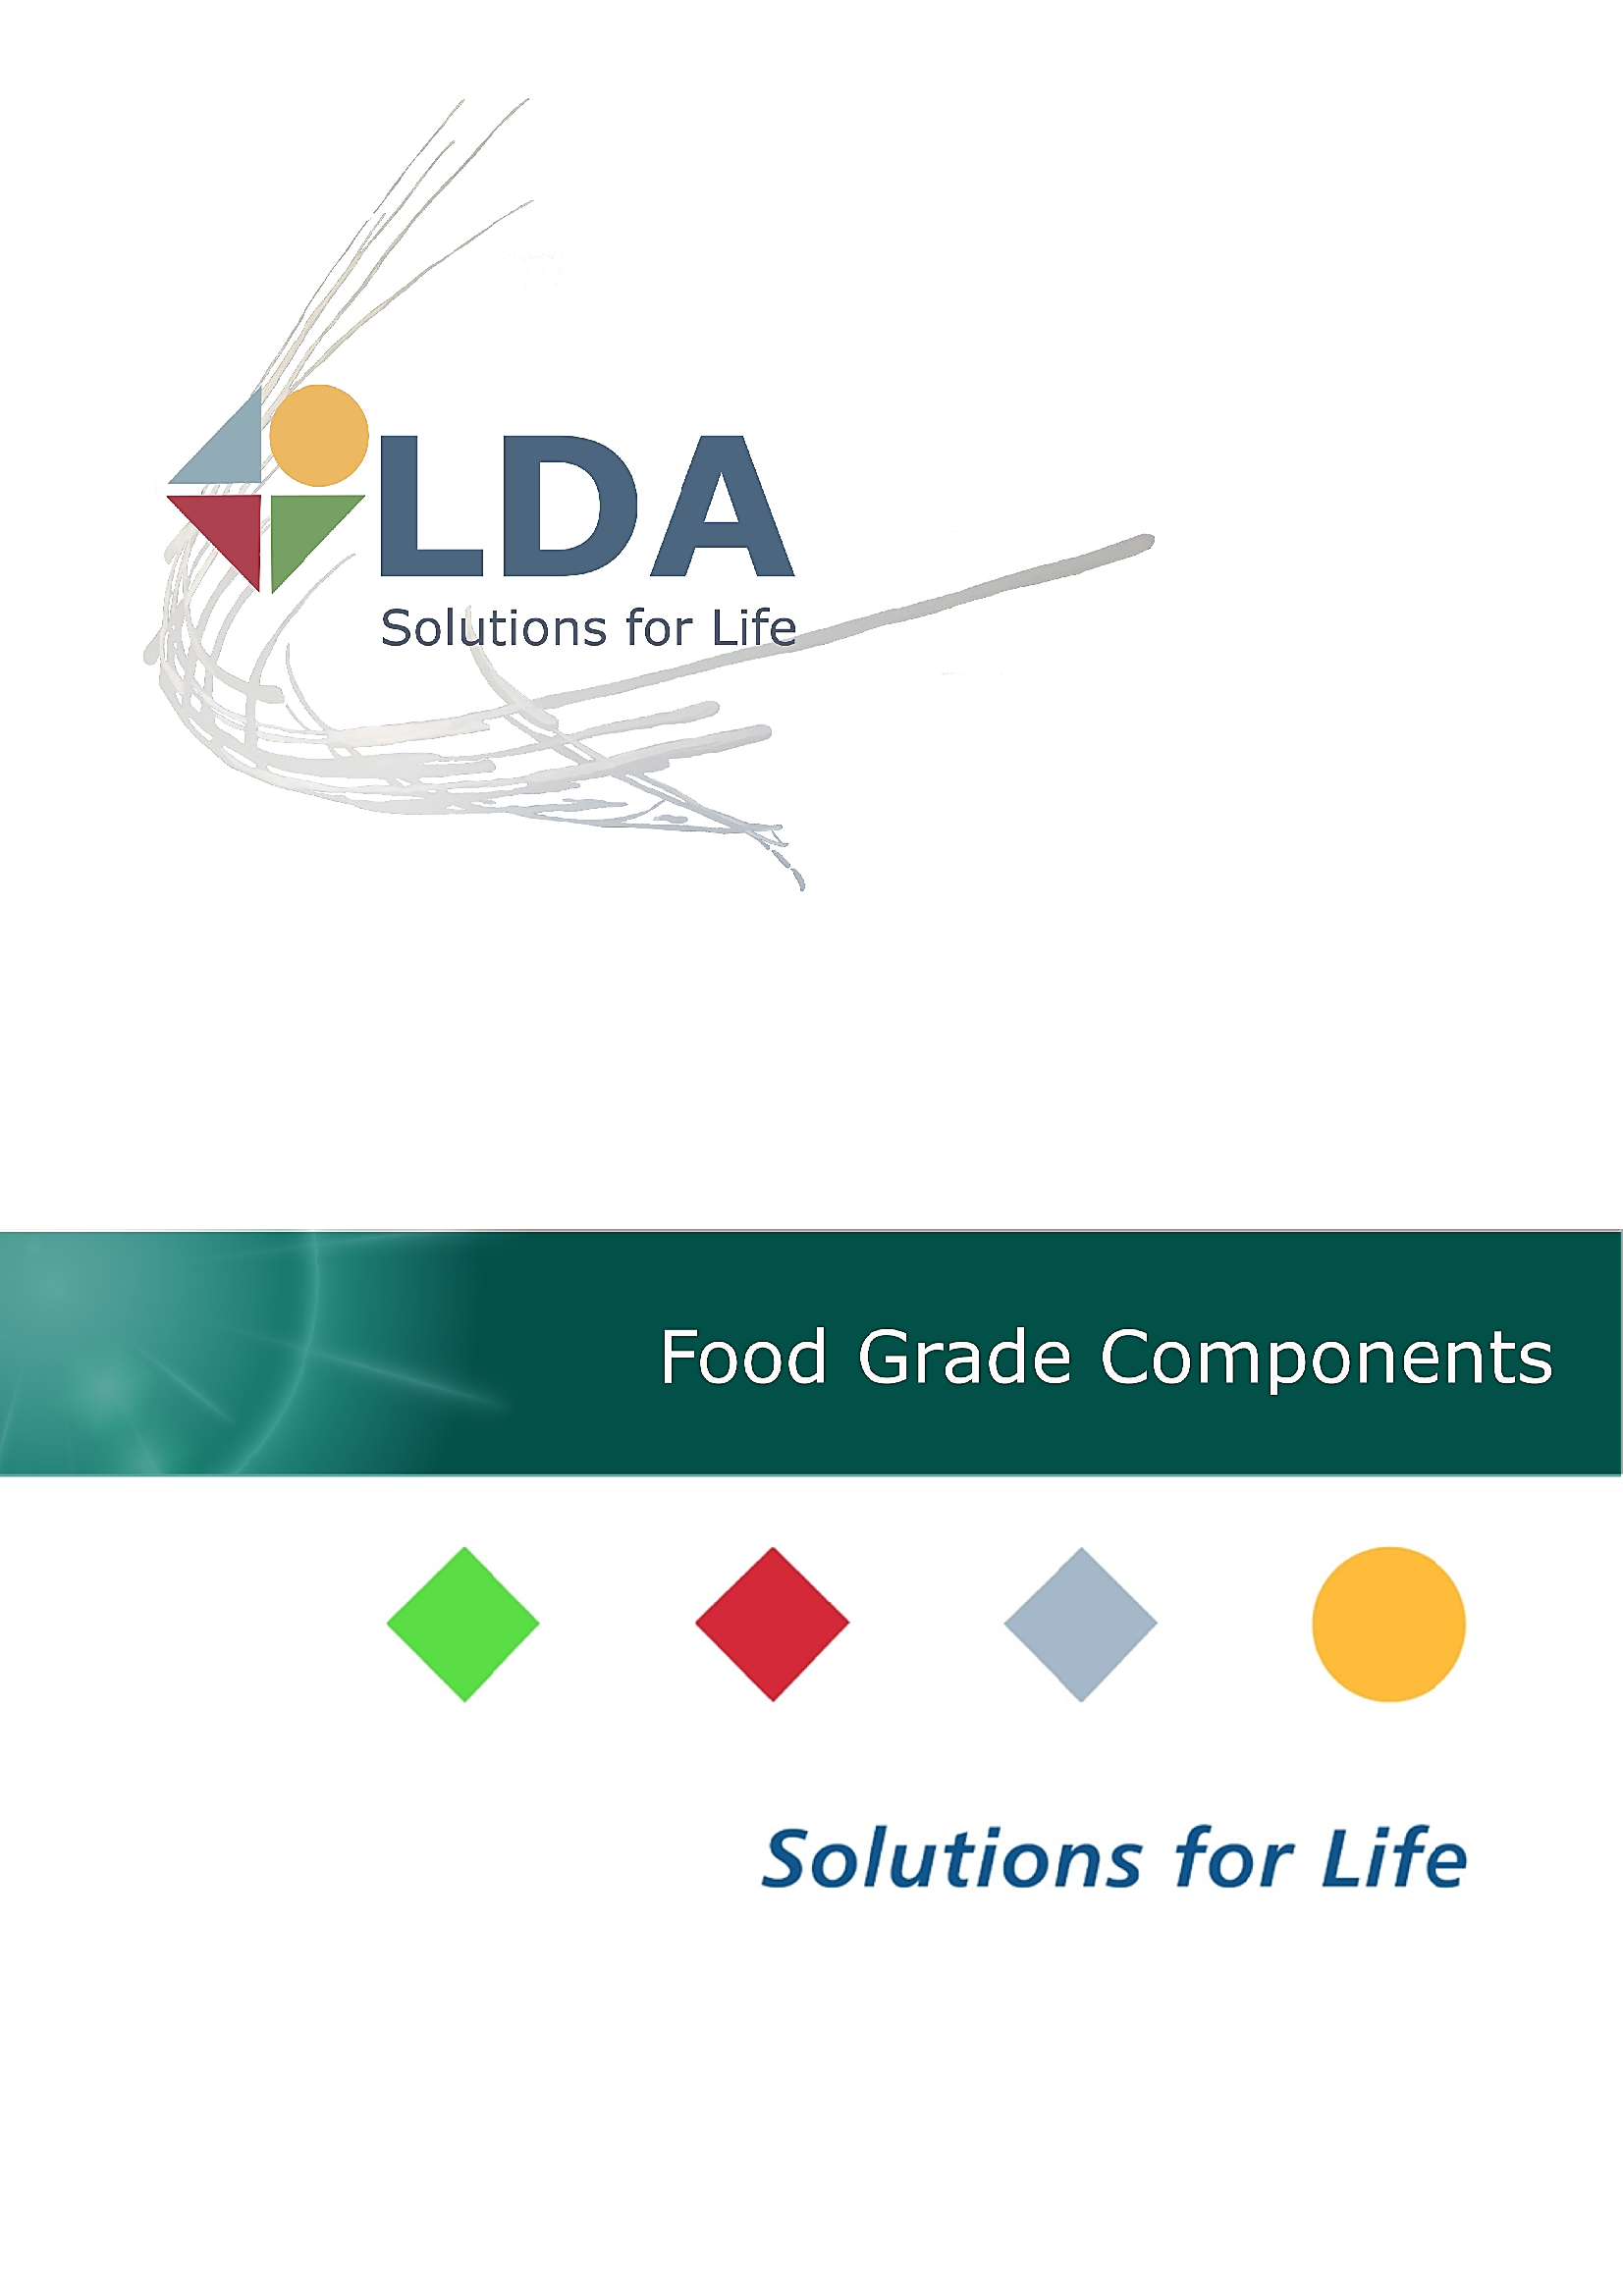 Food grade products